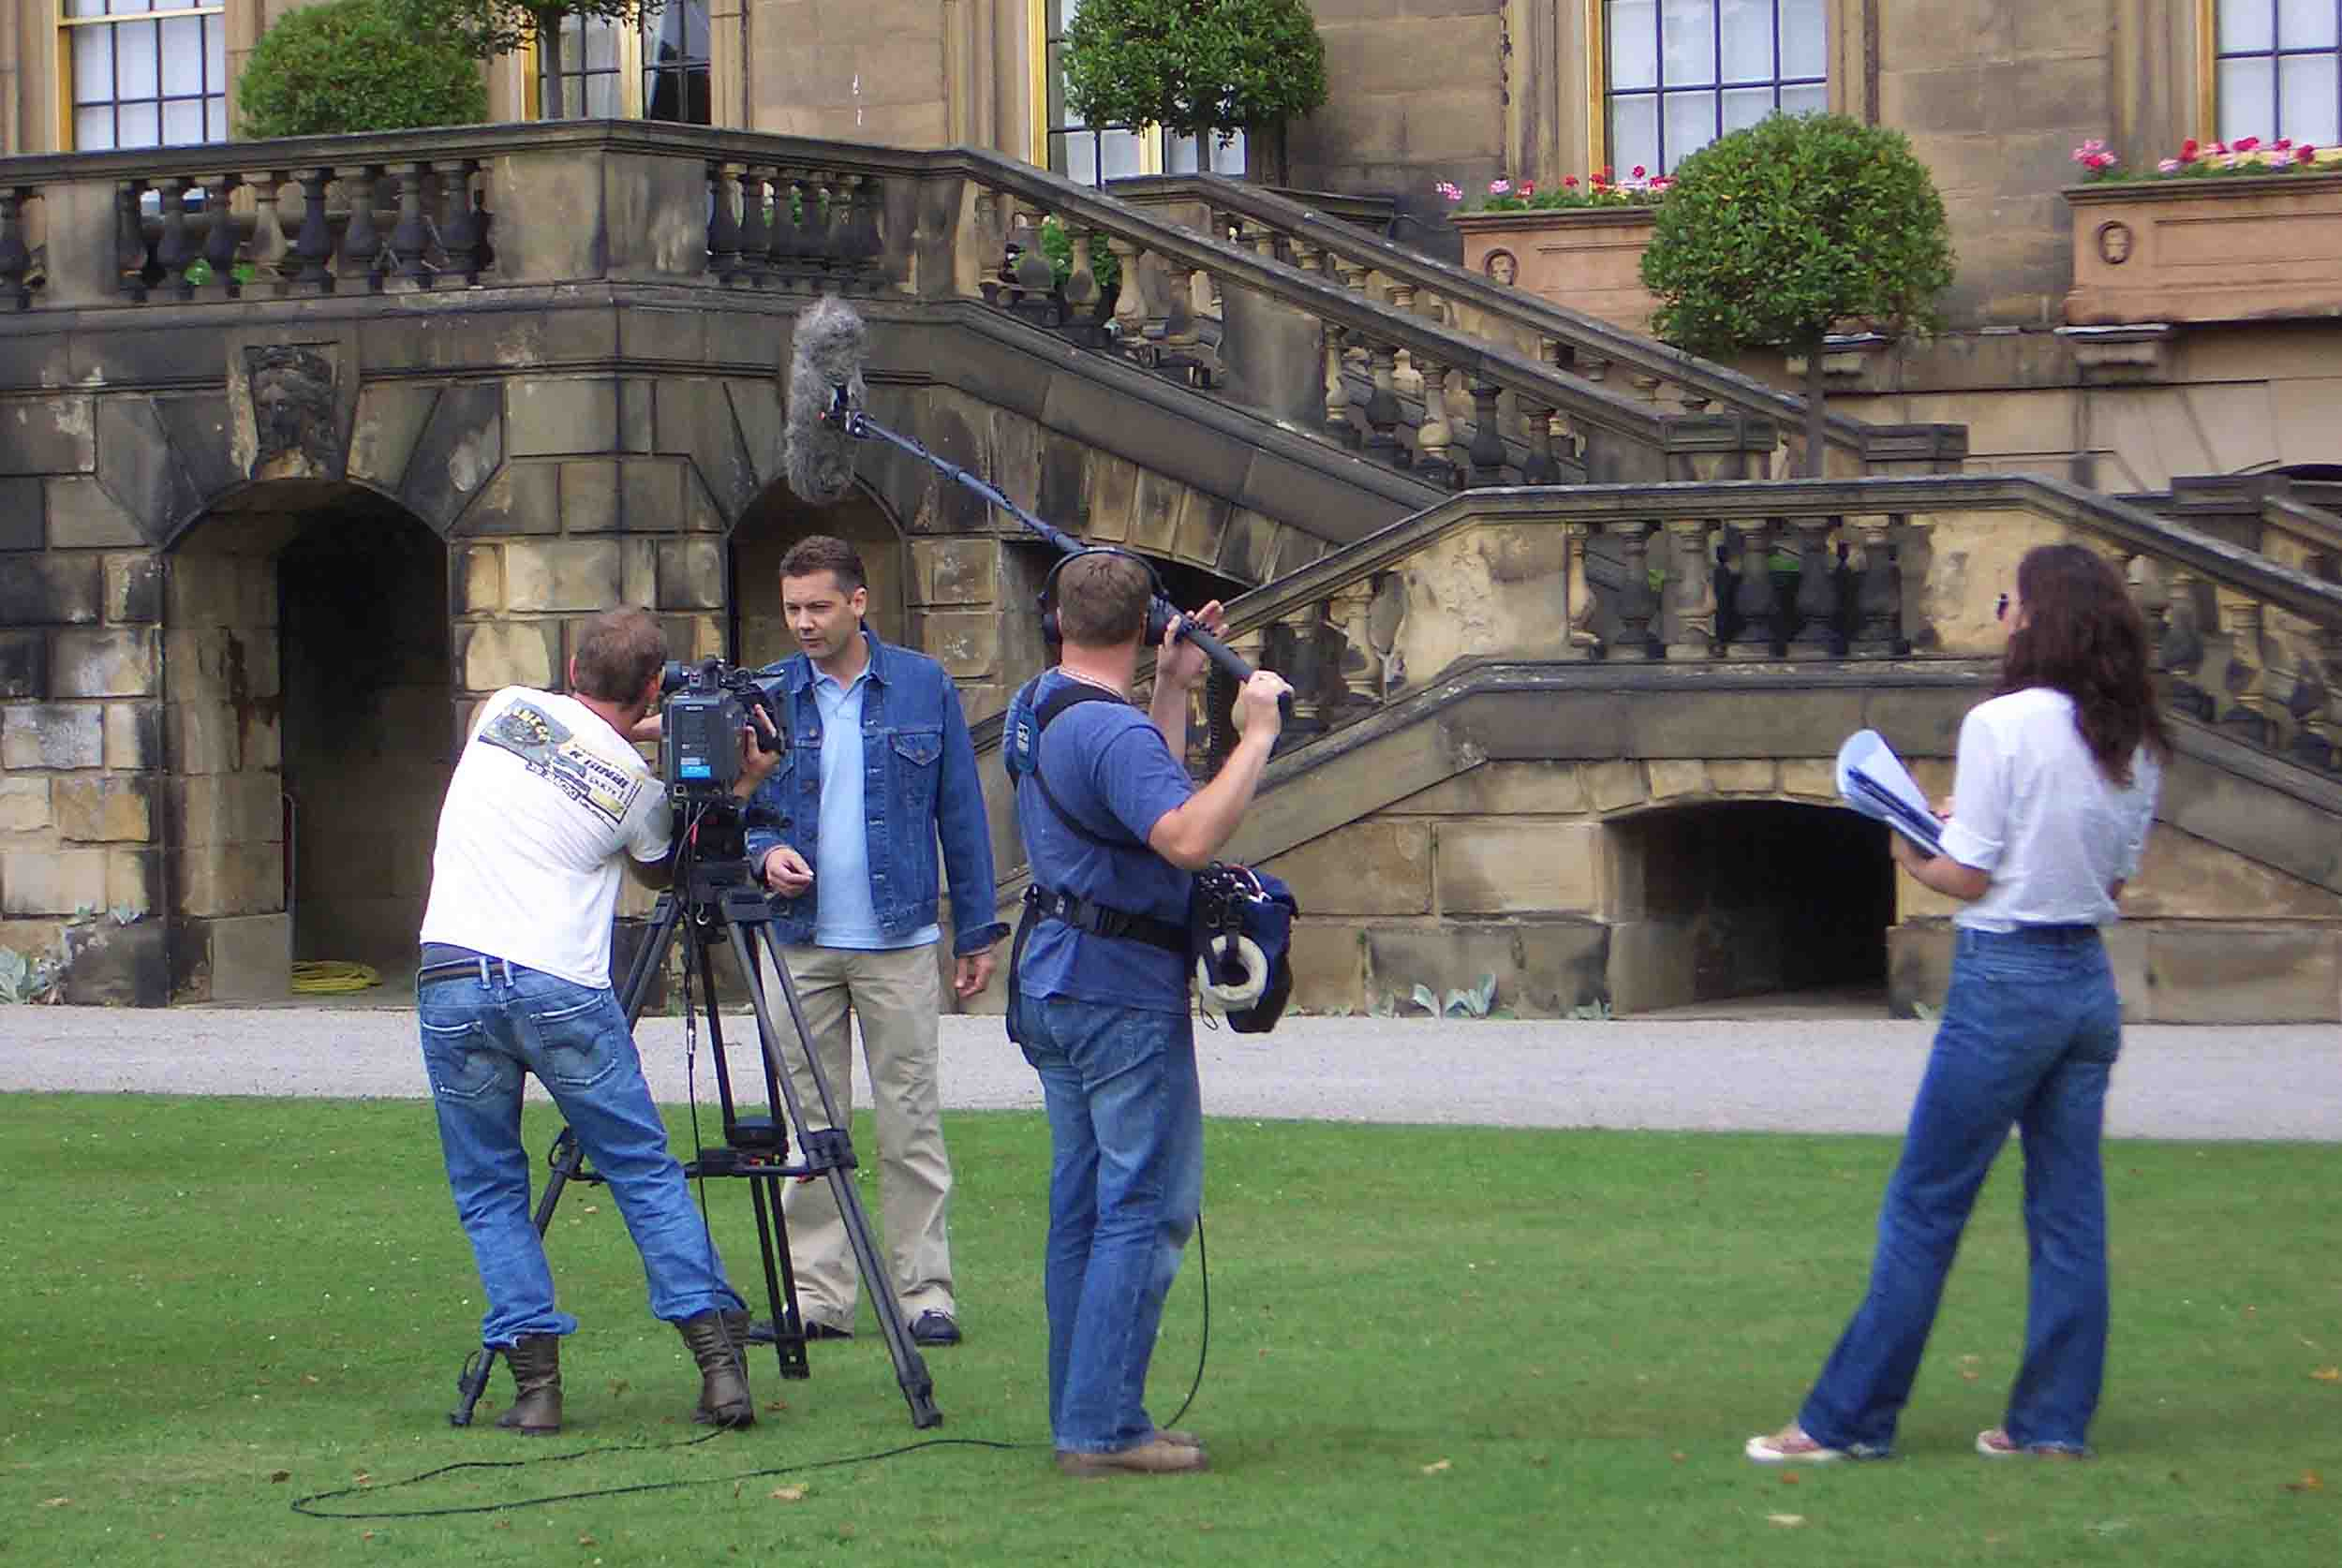 Shooting at Chatsworth House in Derbyshire